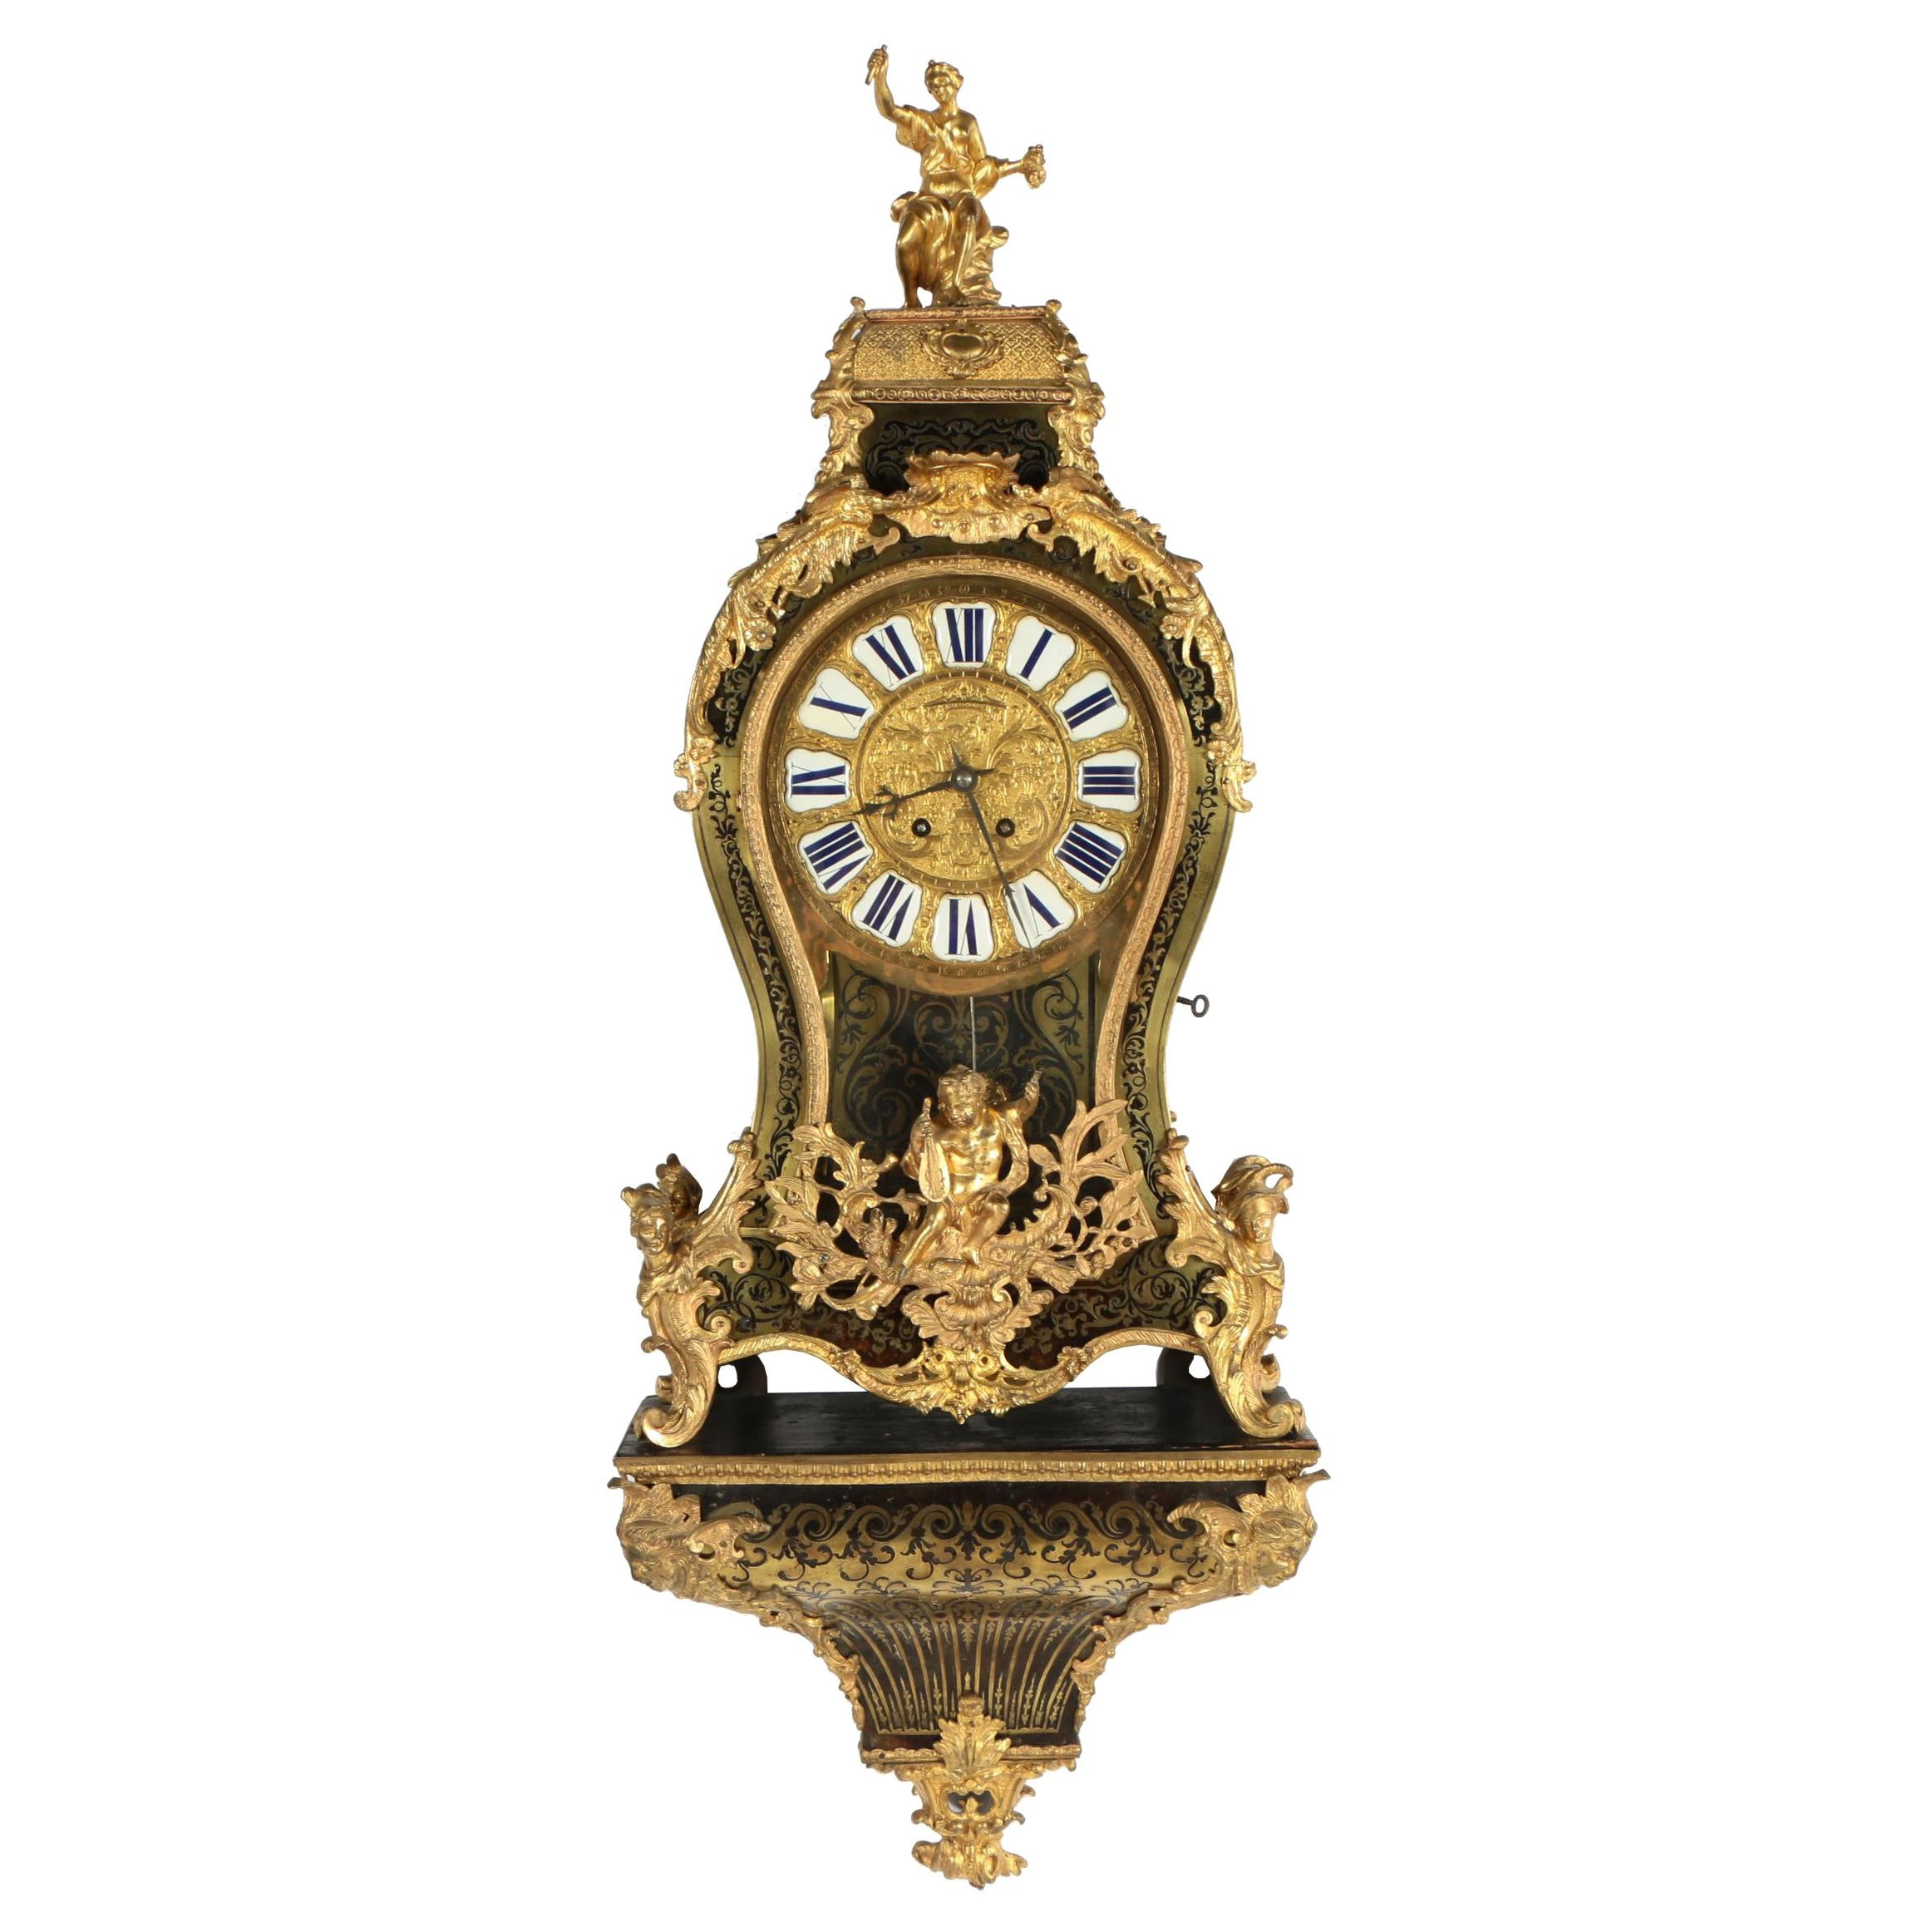 Louis XV Style Gilt Metal, Faux Tortoiseshell, and Brass-Inlaid Bracket Clock